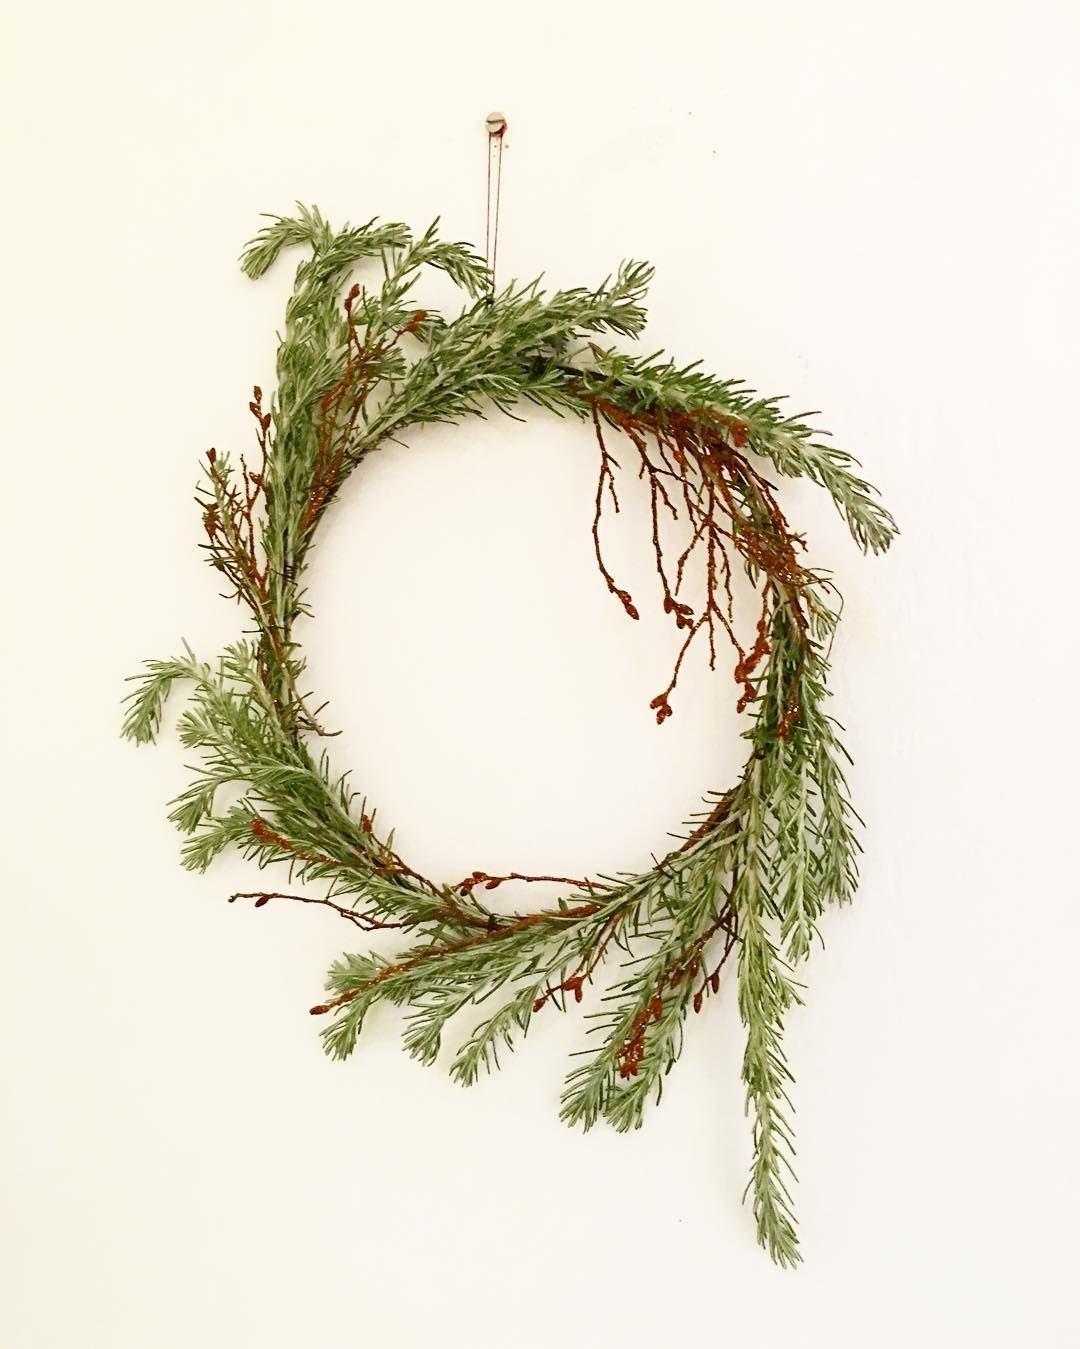 Wreath making listening to Christmas songs on the radio with the ...